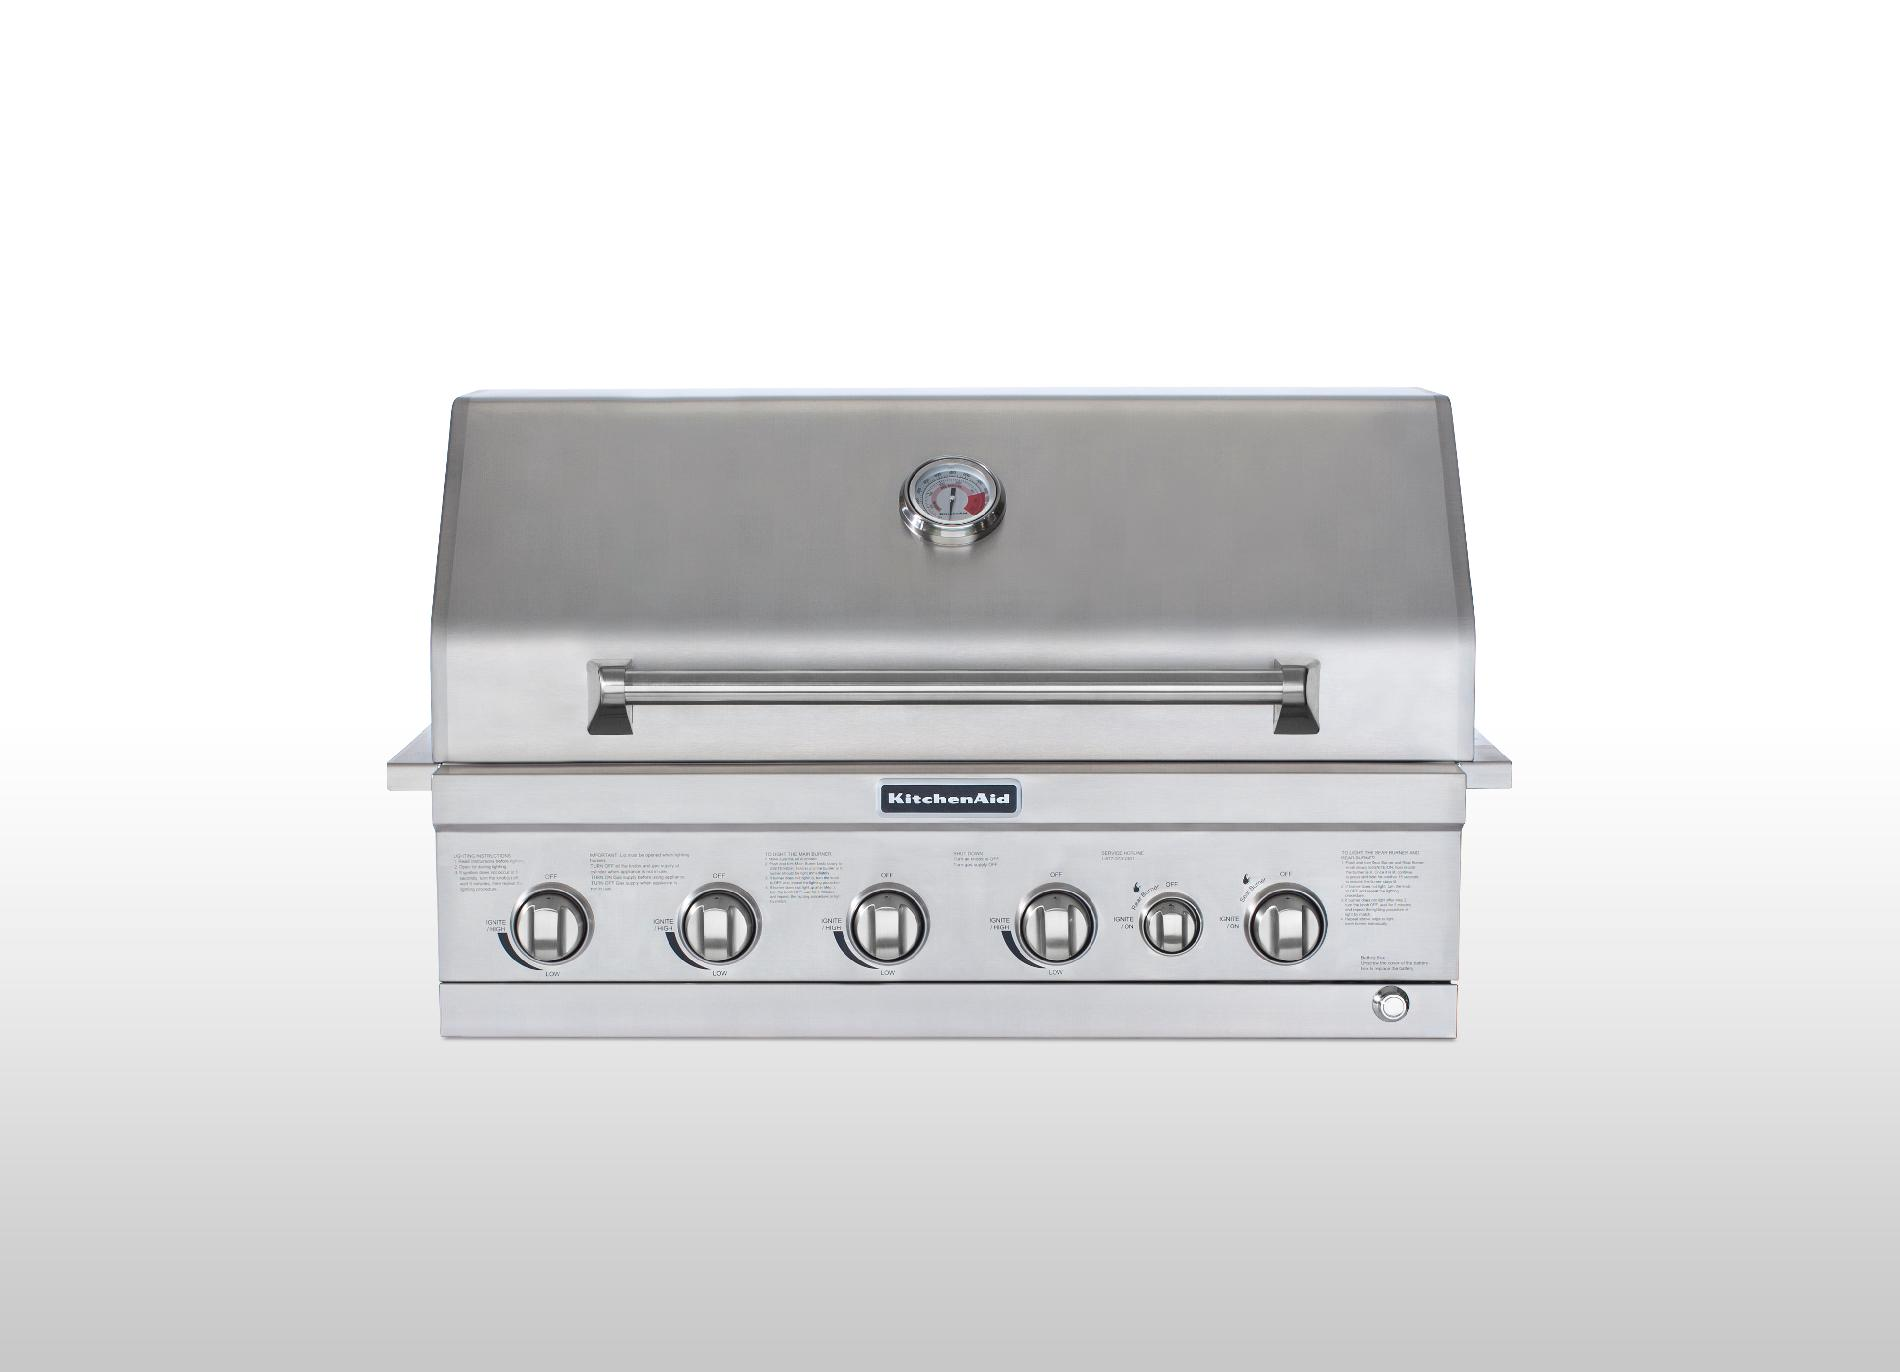 kitchen aid gas grills best undermount sinks kitchenaid 36 4 burner built in grill with ceramic searing and rotisserie